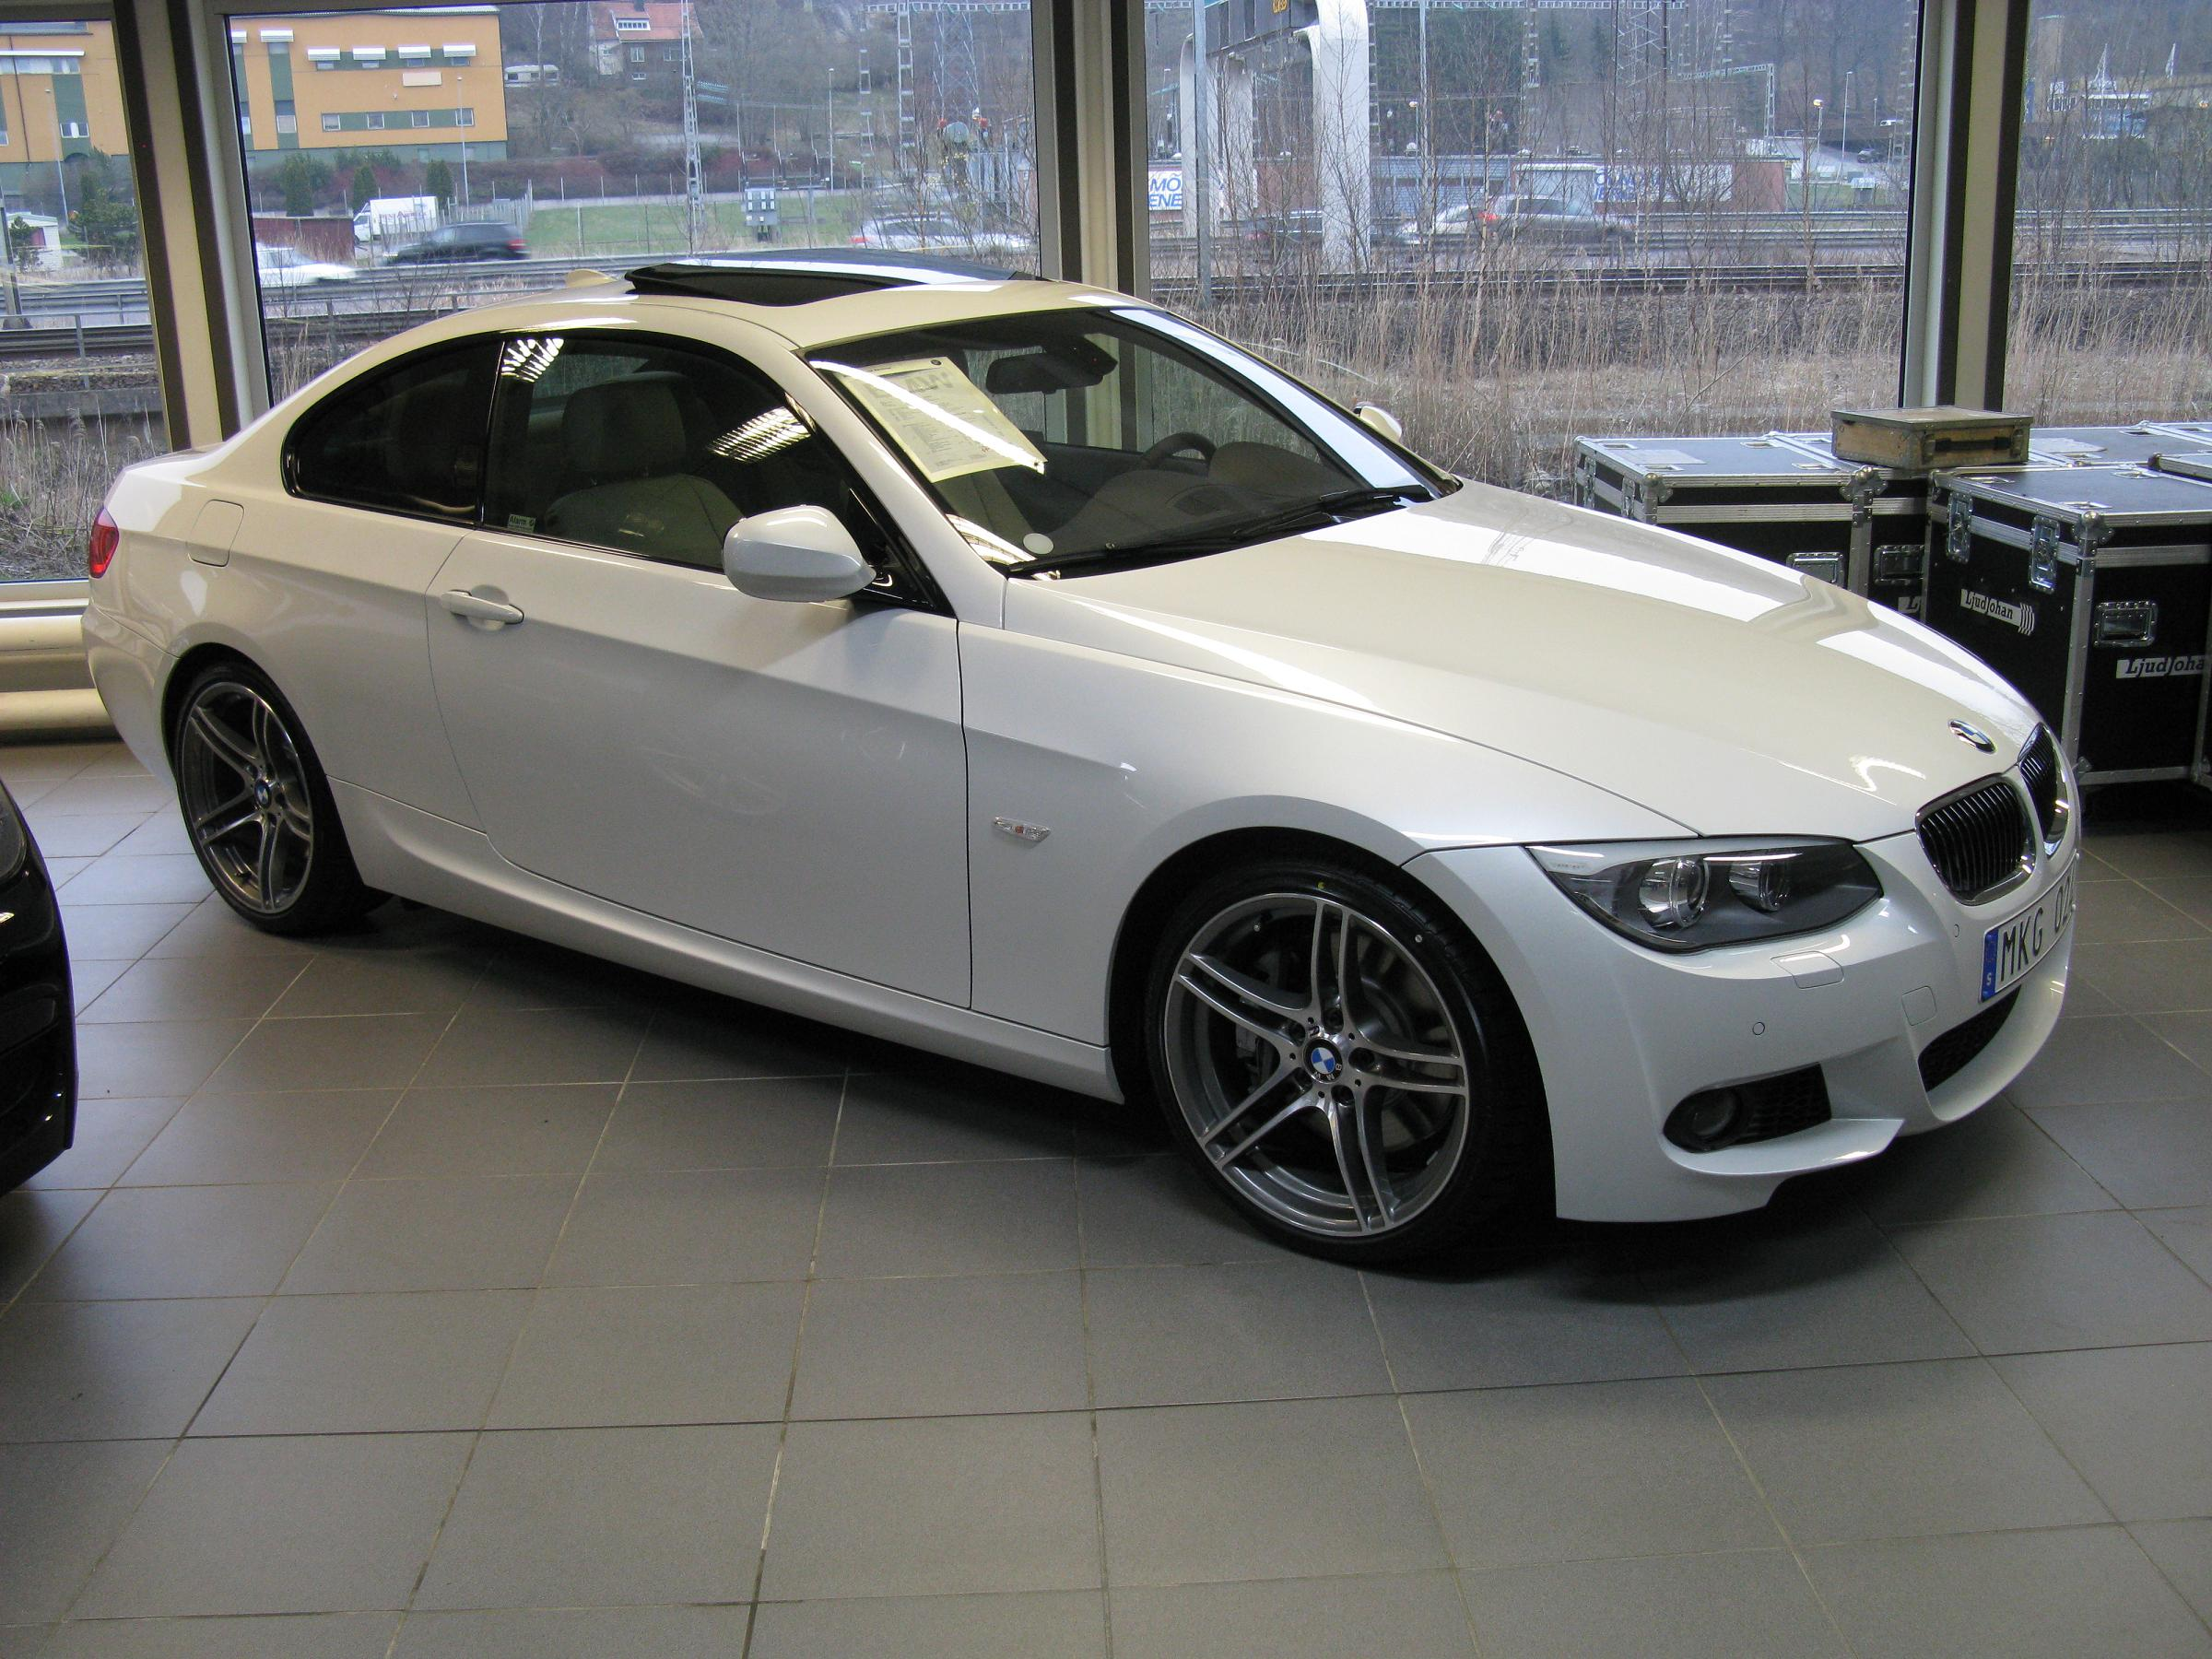 FileBMW I M Sport Coupé Jpg Wikimedia Commons - 2014 bmw 335i coupe